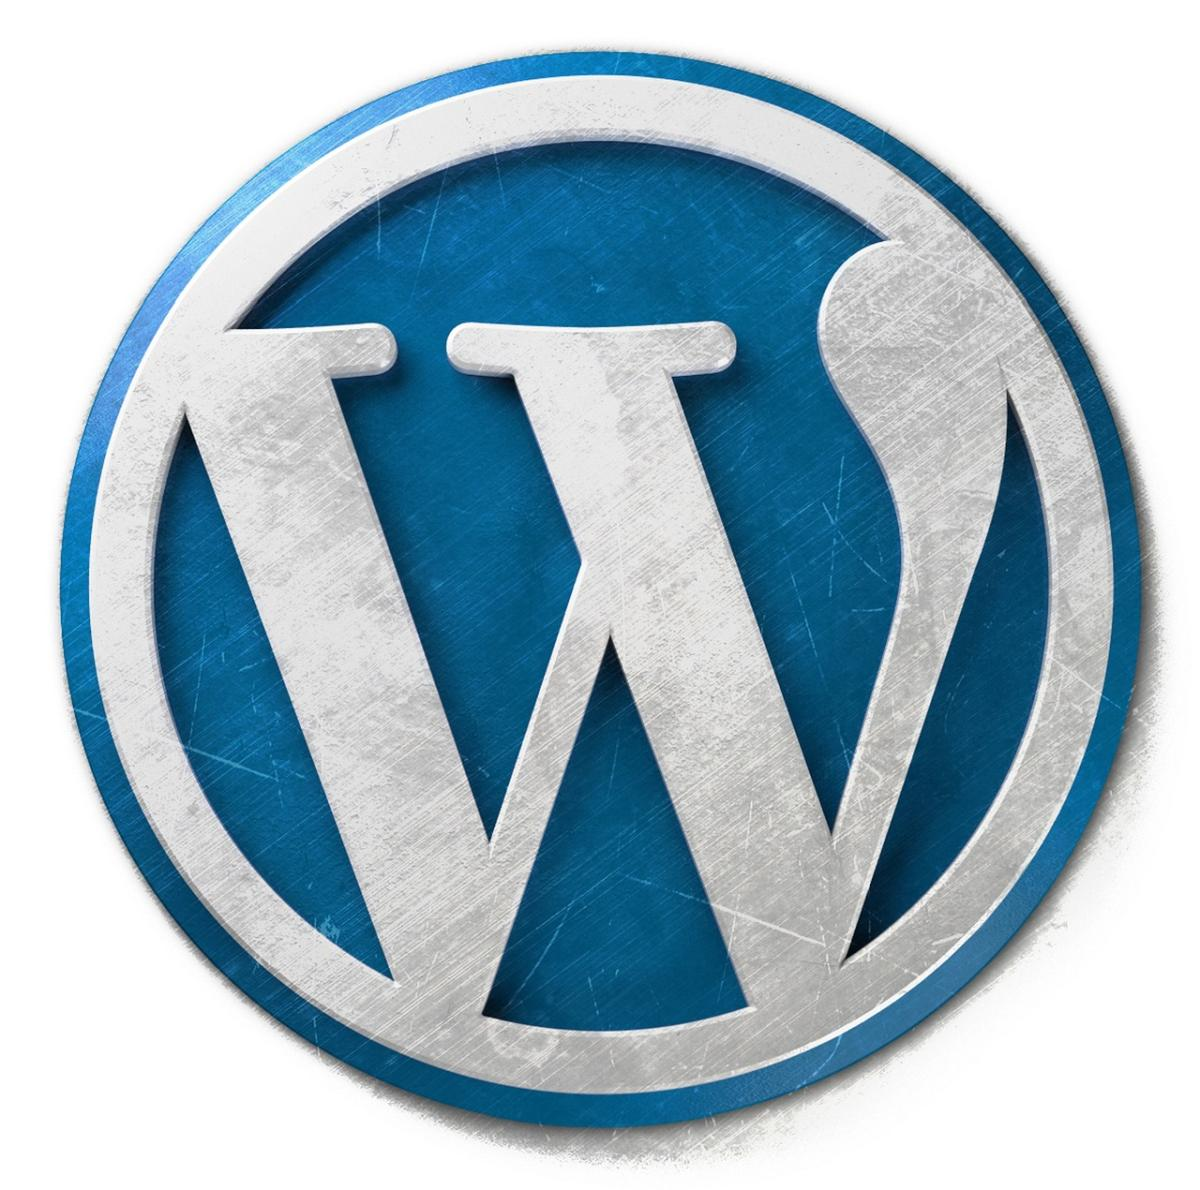 Blue and White WordPress Logo (Open Source Example)